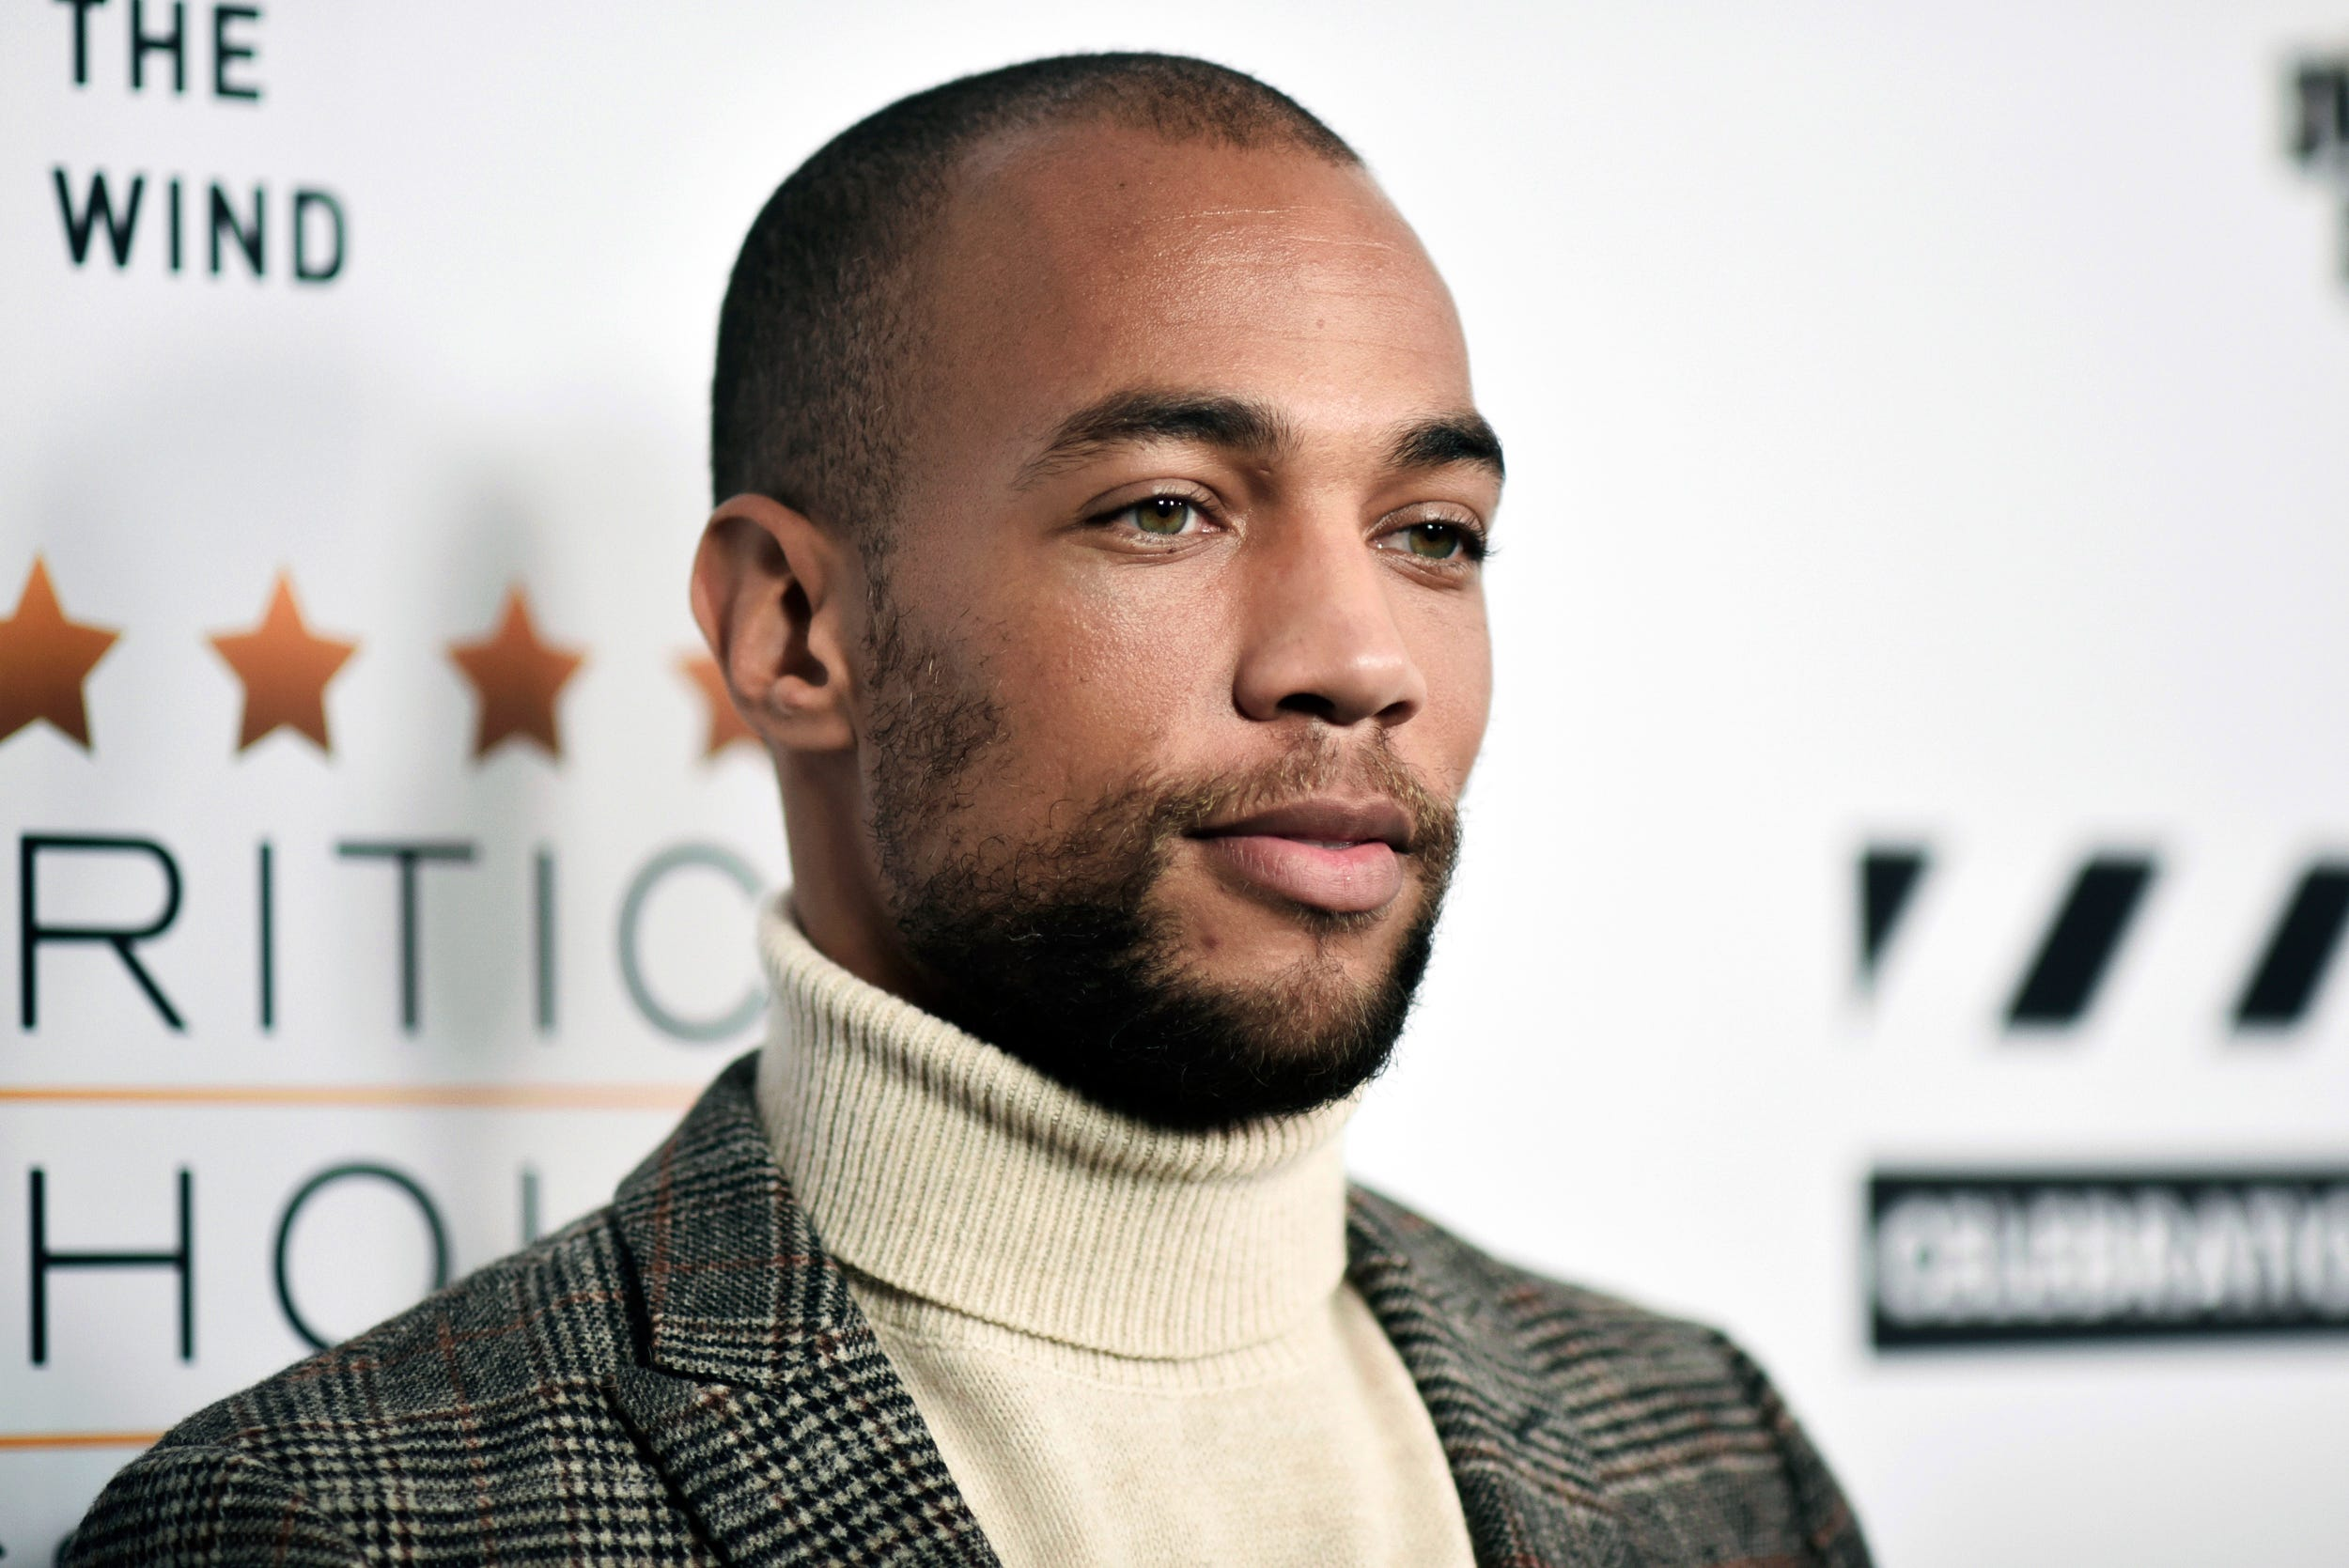 They re gonna arrest us all :  Insecure  star Kendrick Sampson protests on behalf of George Floyd